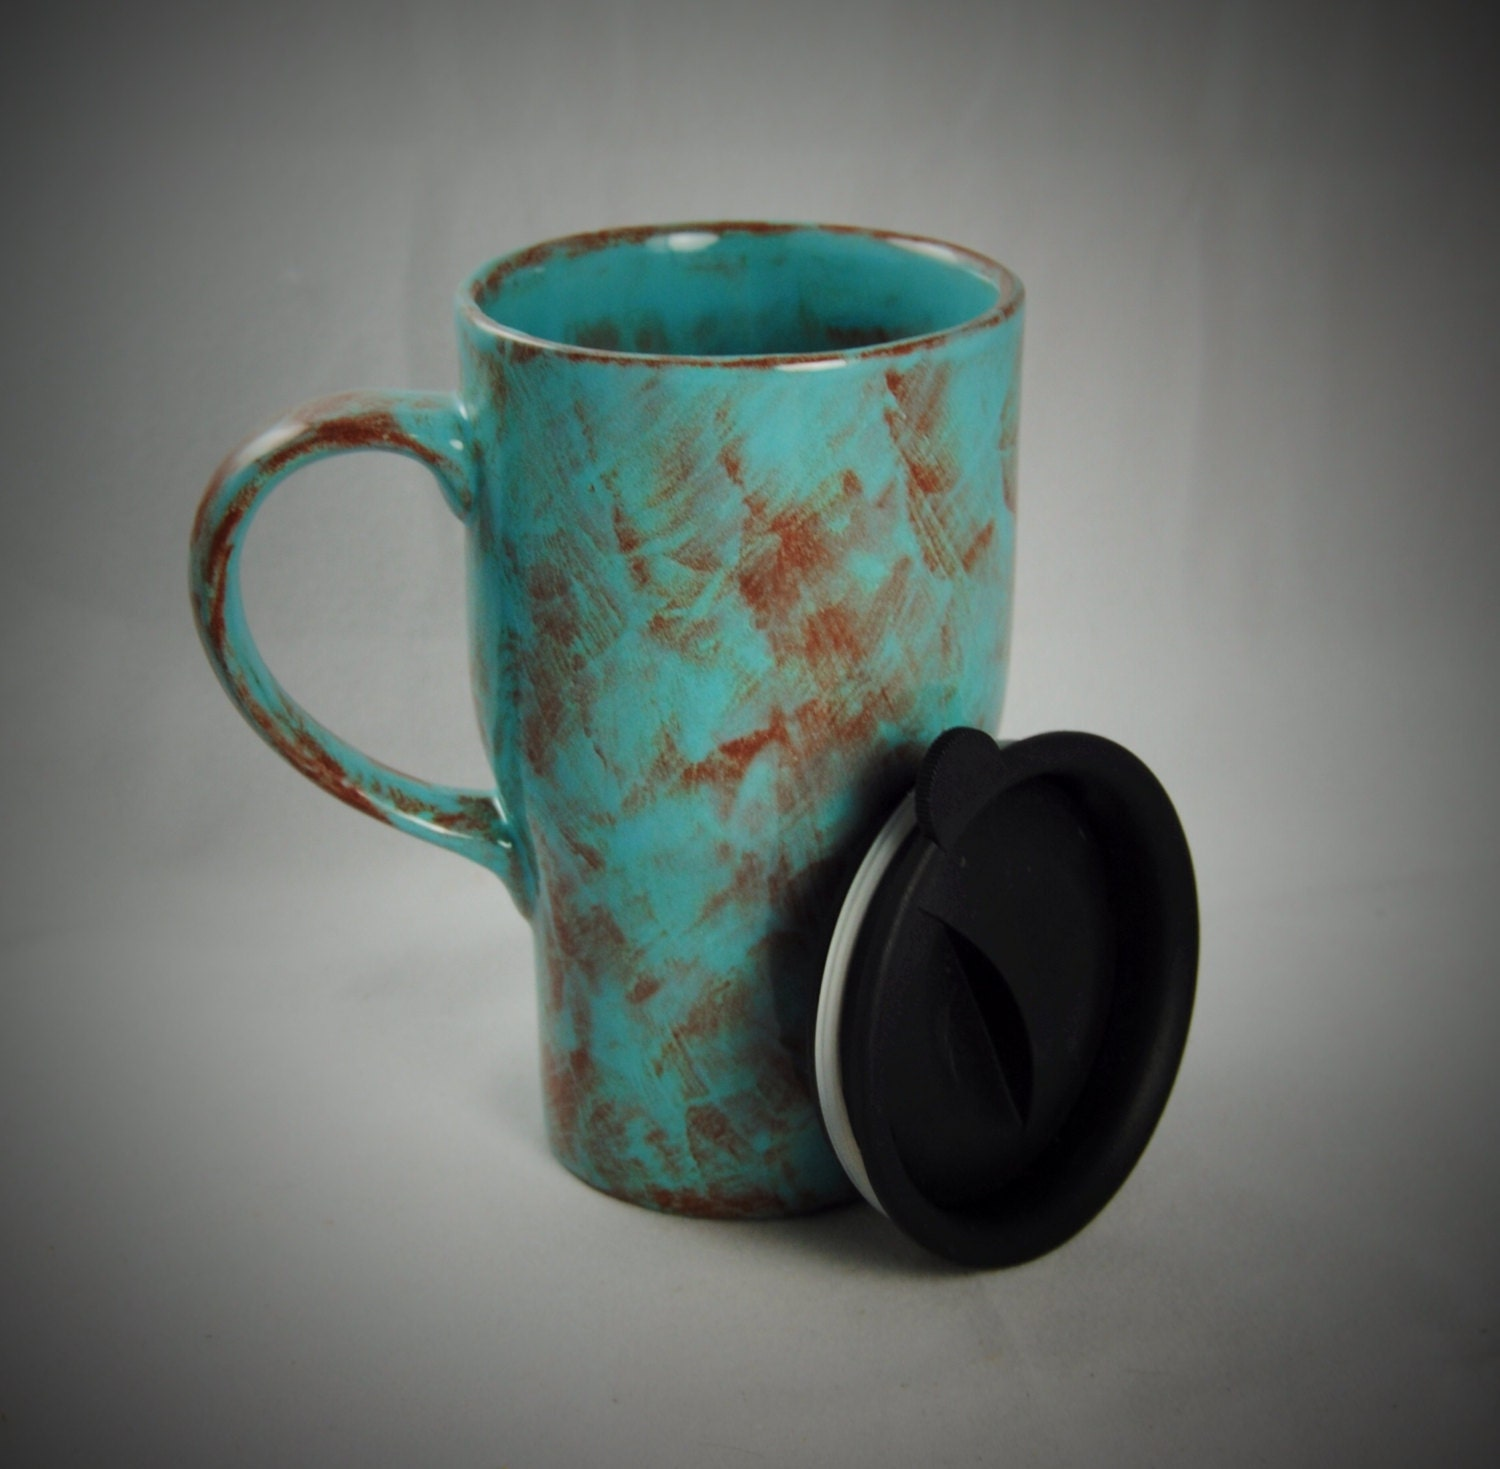 teal and auburn ceramic travel mug with a lid